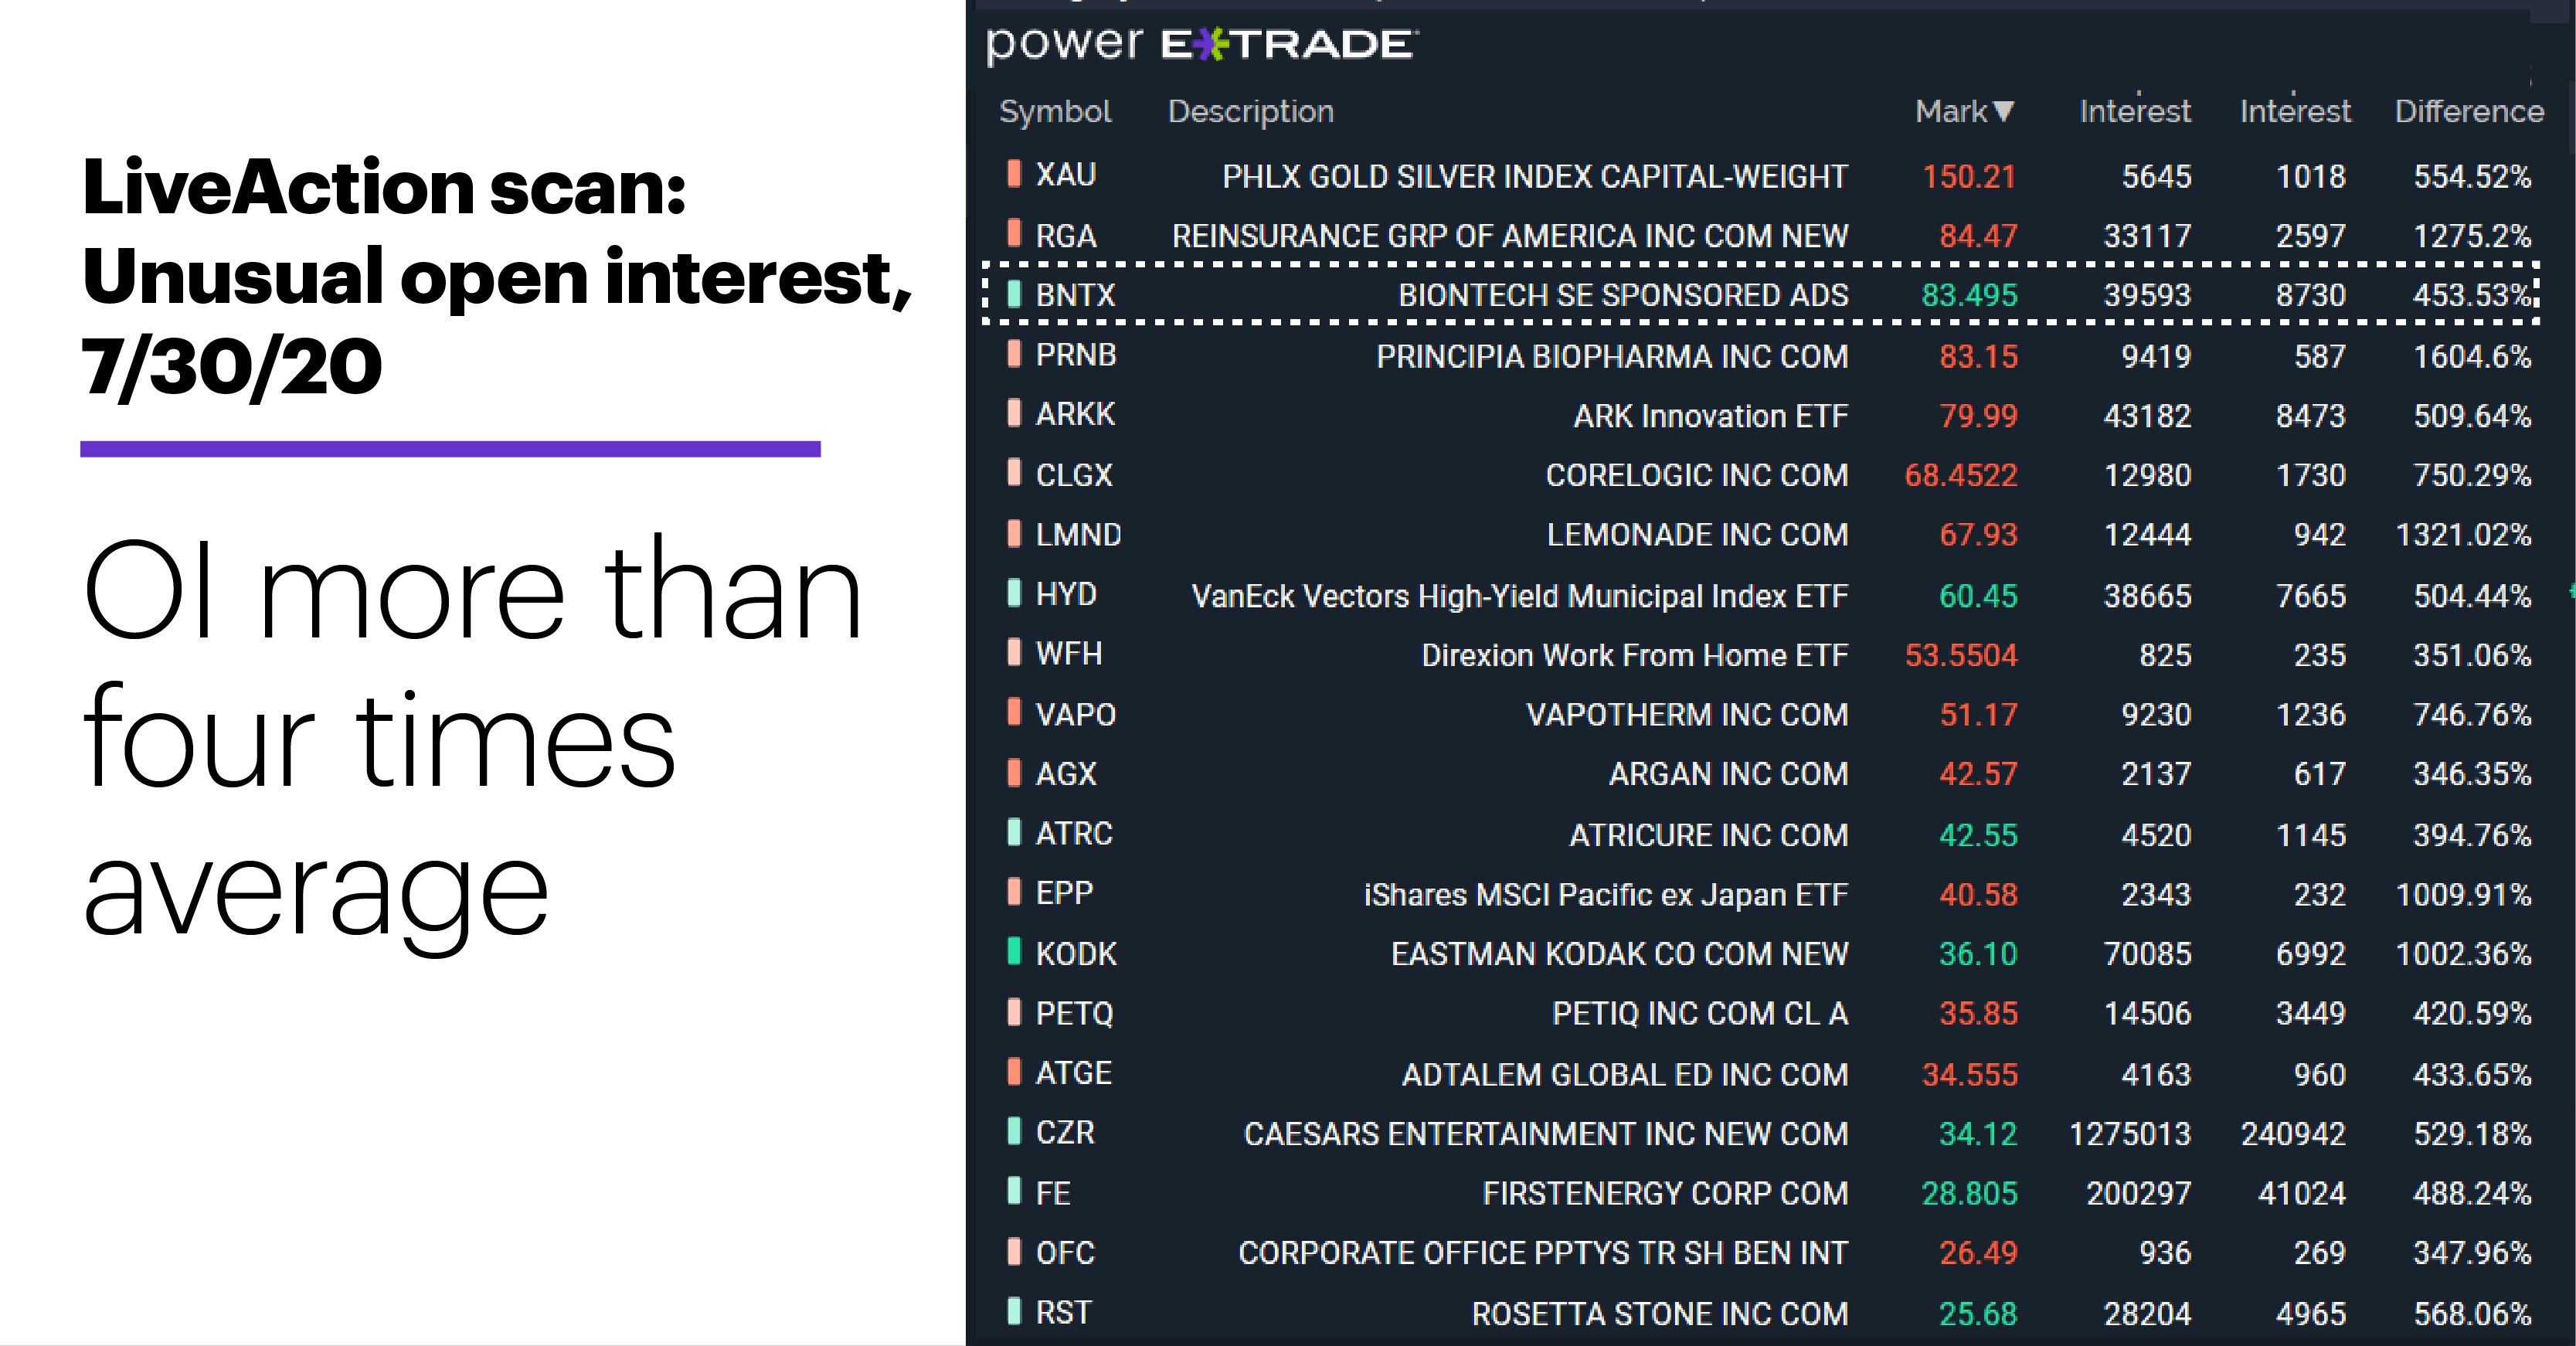 Chart 1: LiveAction scan: Unusual open interest, 7/30/20. Unusual options activity. OI more than four times average.